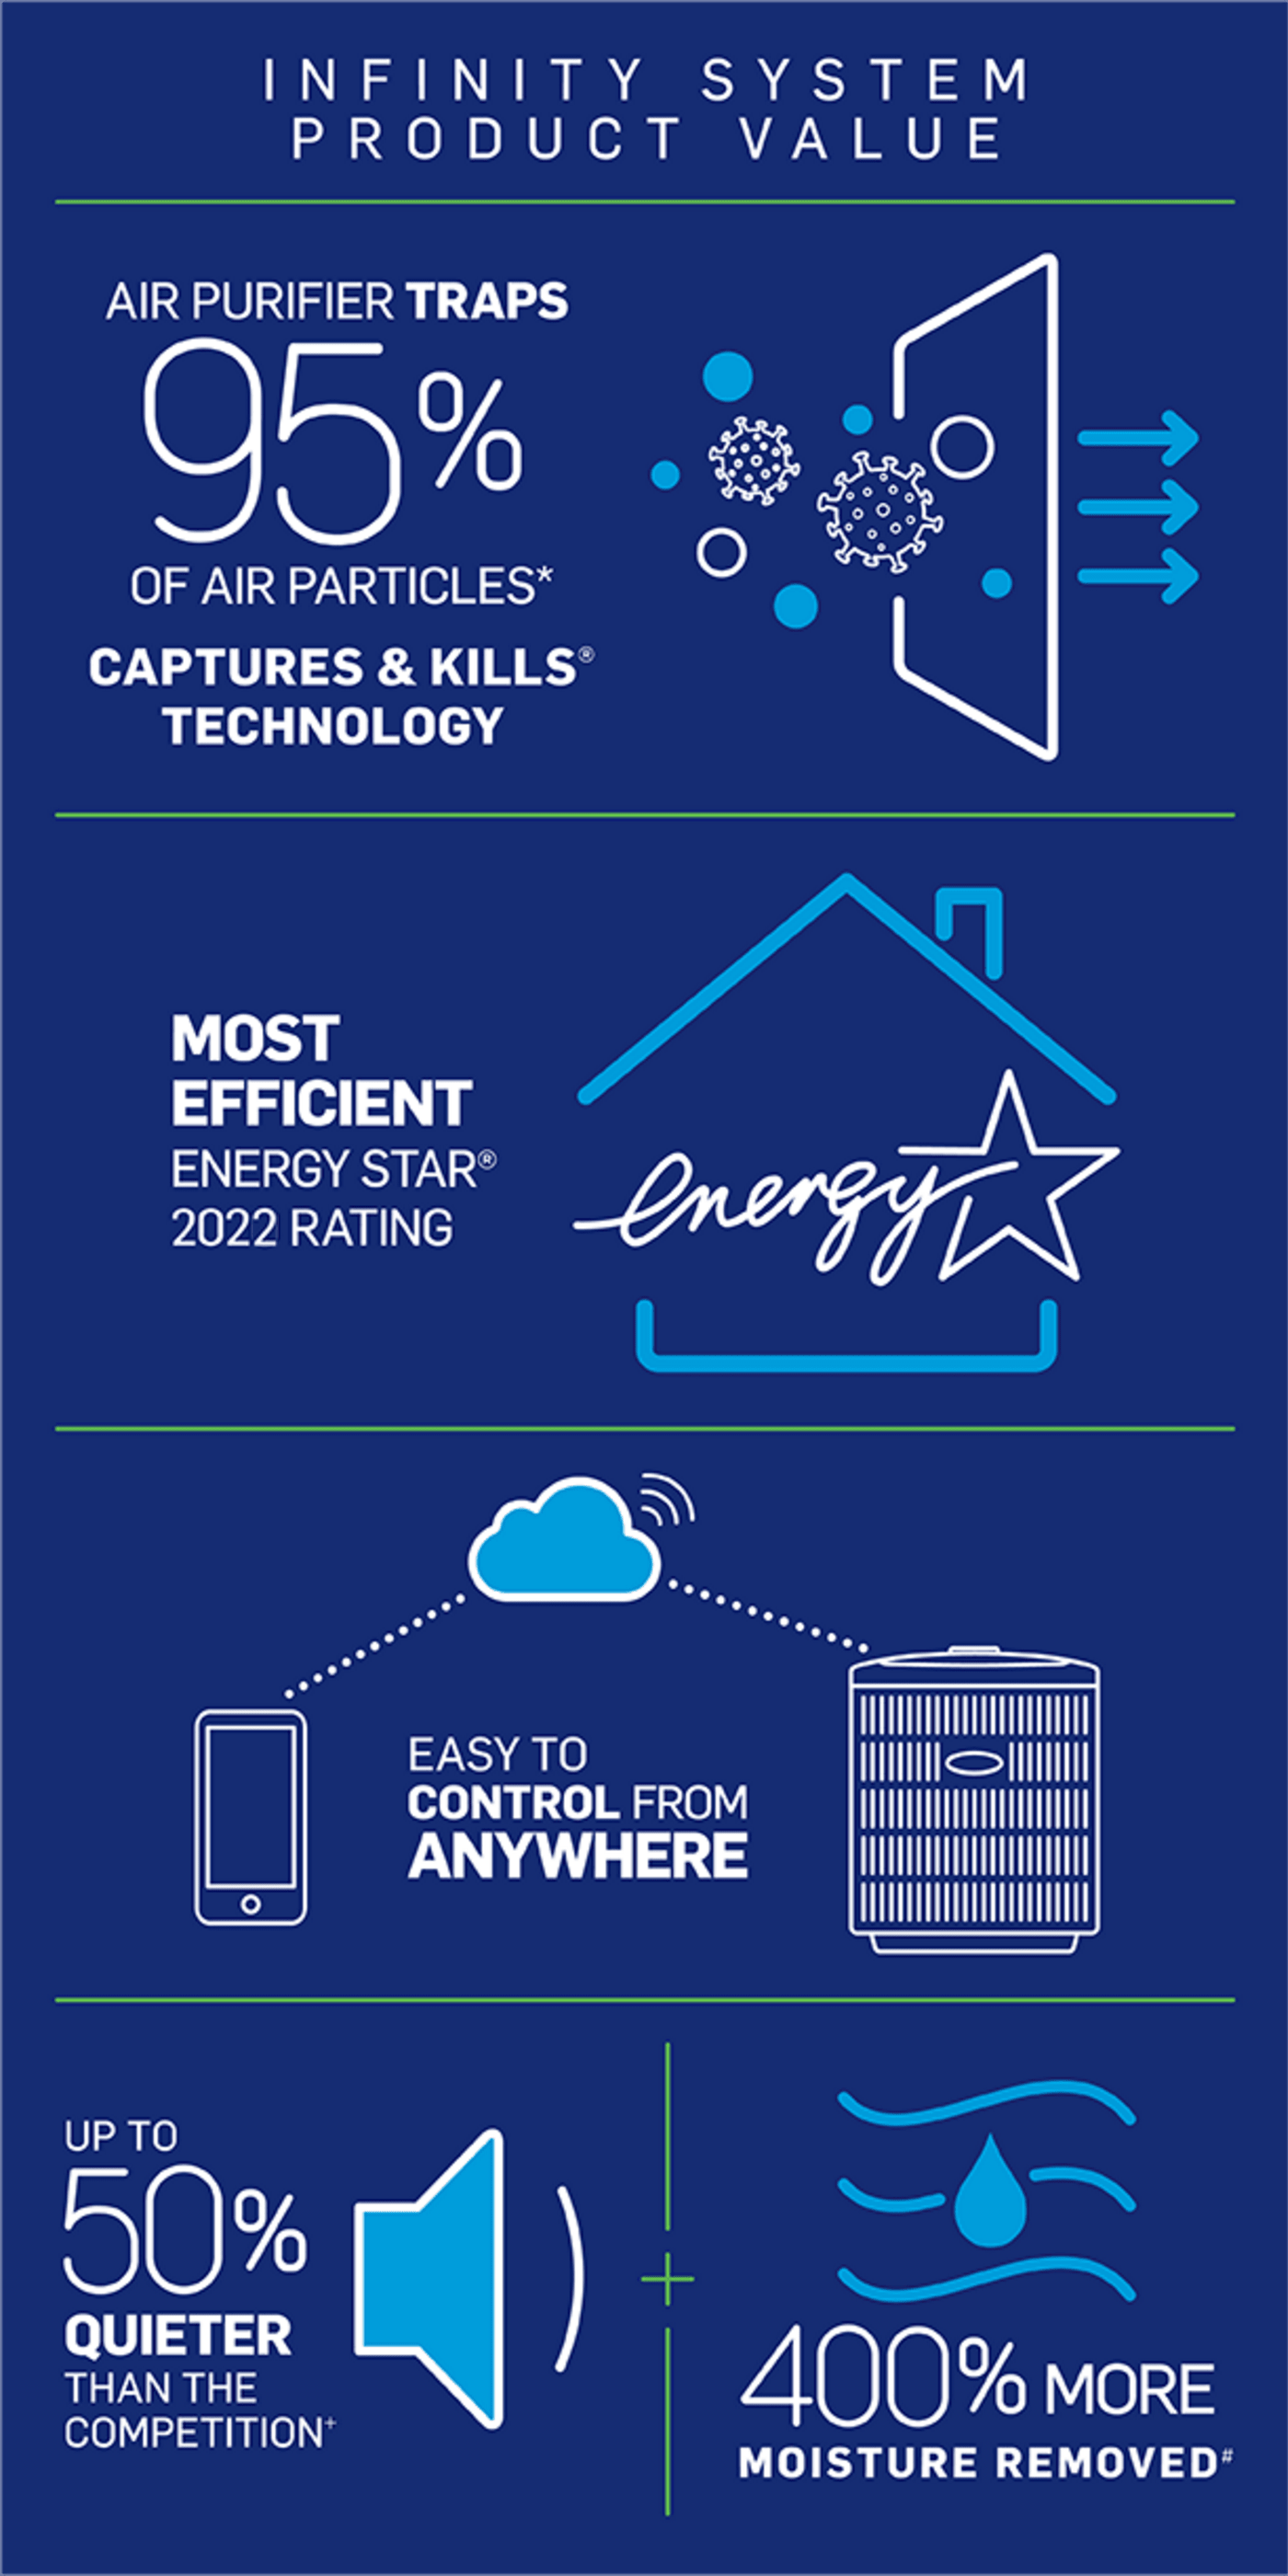 carrier-product-value-infographic-mb